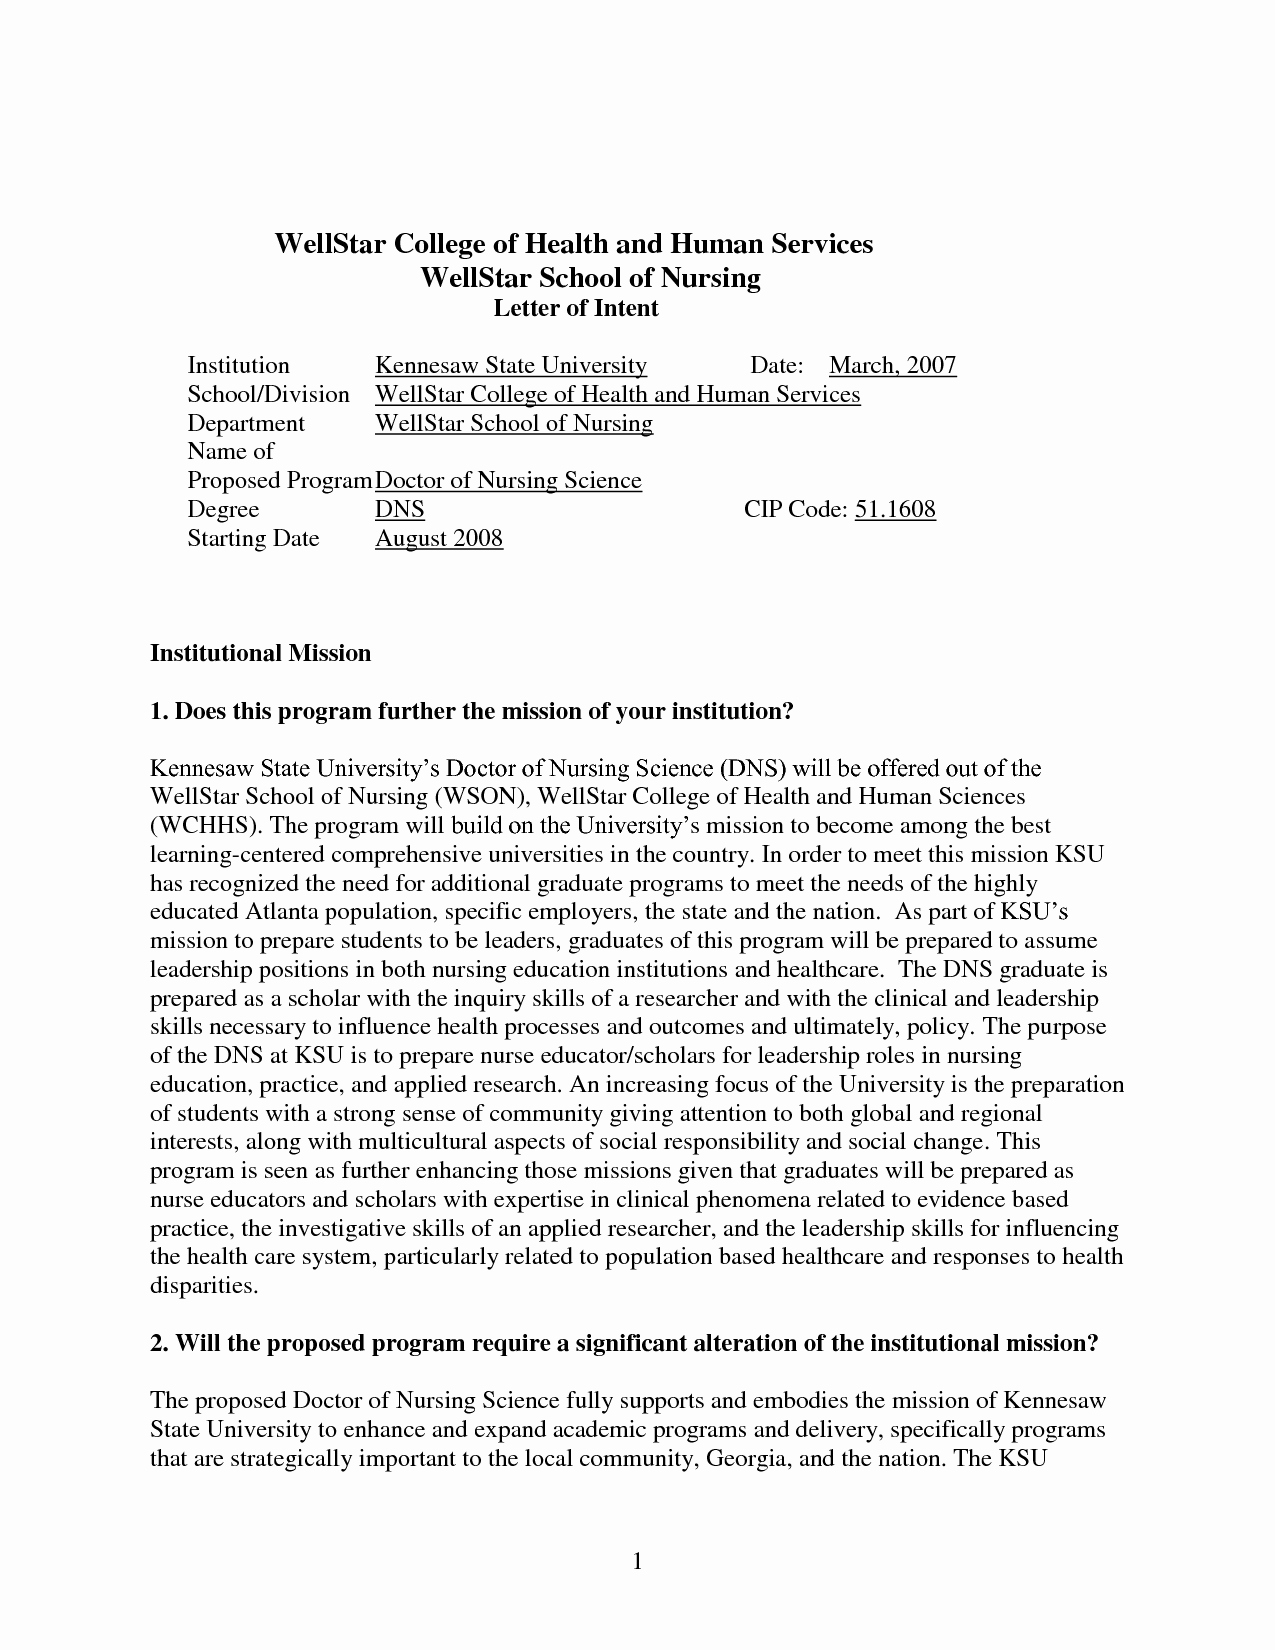 Phd Letter Of Intent Sample Best Of Sample Letter Intent for Grad School Admission